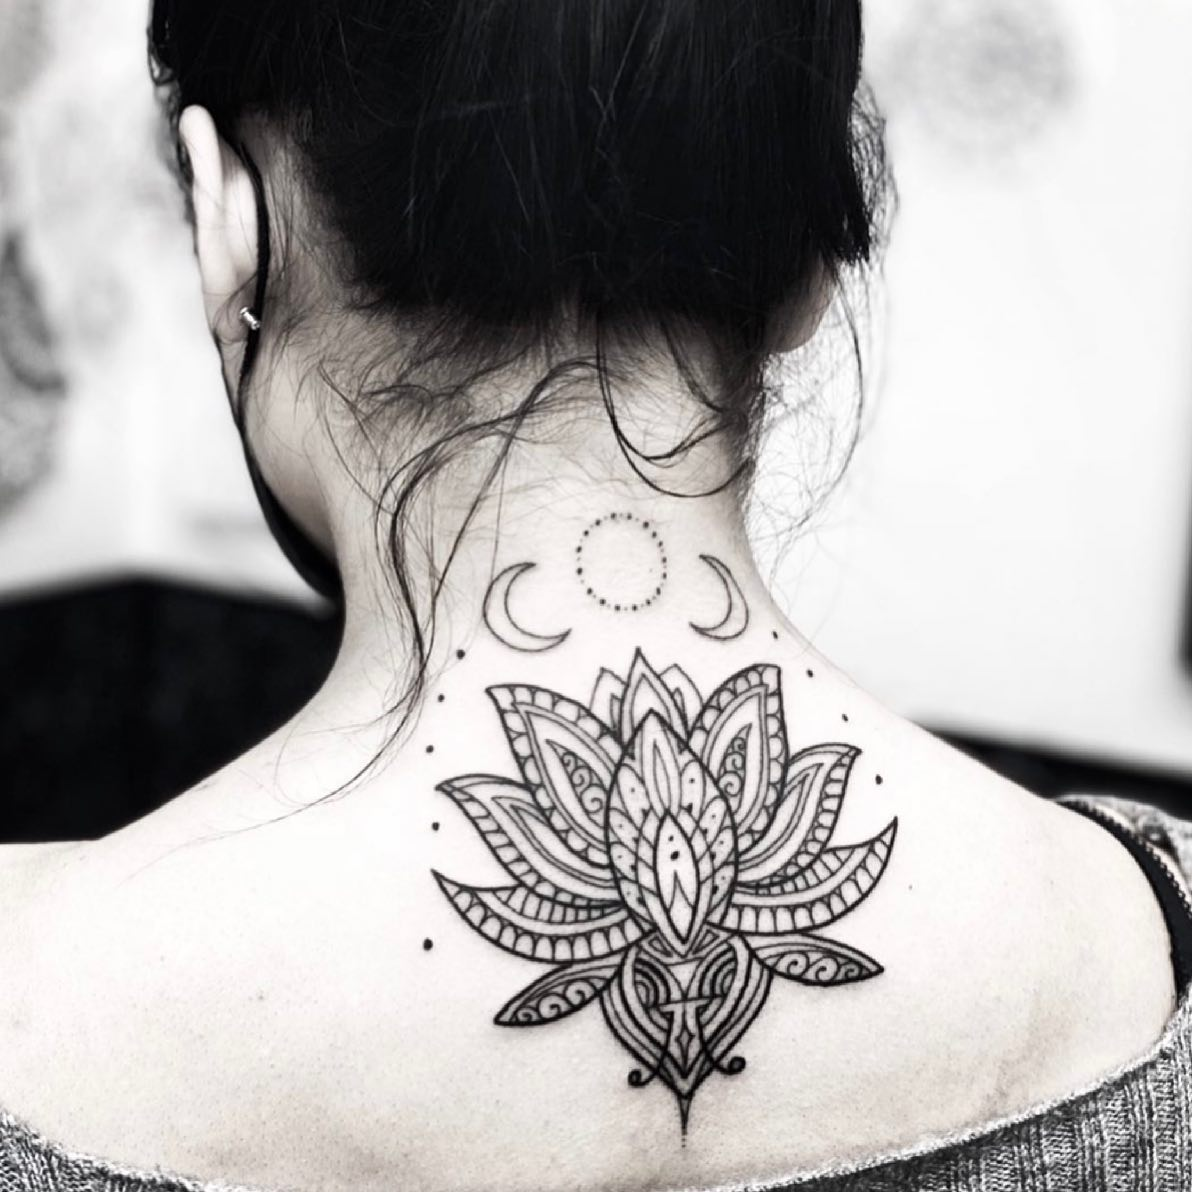 ✨ All appointments that were cancelled due to the lockdown will be contacted by the reception team in the next couple of weeks ✨  💫 We will be taking new appointments from the date we reopen, hopefully the 26th of April 💫  But for now, check out this beautiful ornamental piece by marcdiamondtattoo ✨ We are so excited to hopefully be reopening at the end of the month, if you are looking for a quote please fill out our tattoo enquiry form on our website 🙌  📩 - link in the bio